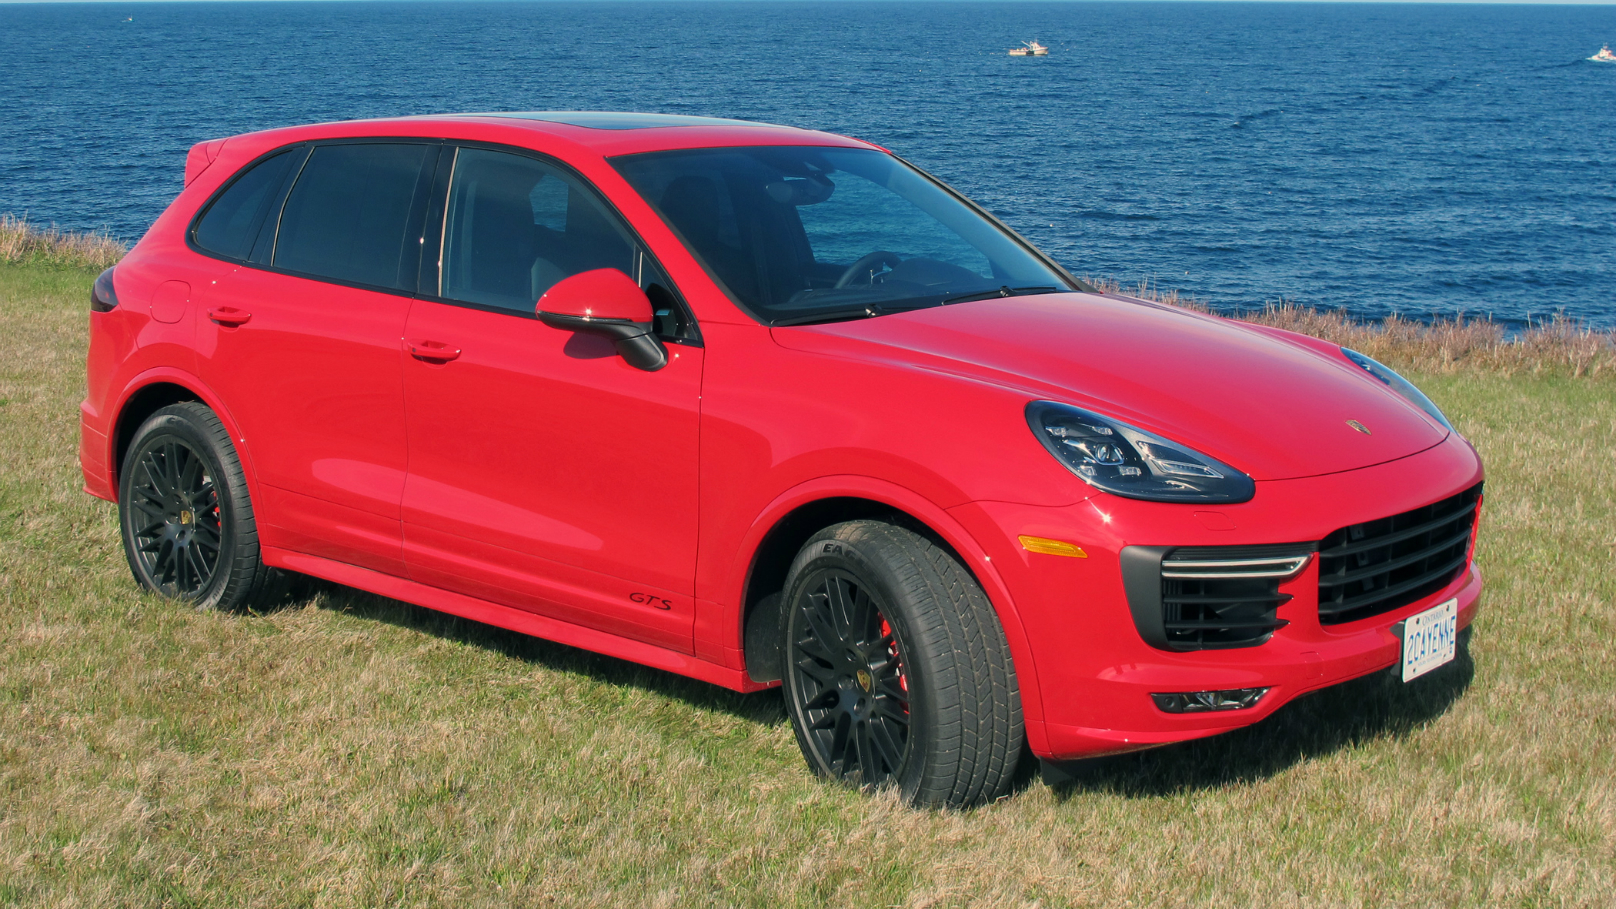 2017 Porsche Cayenne GTS Review